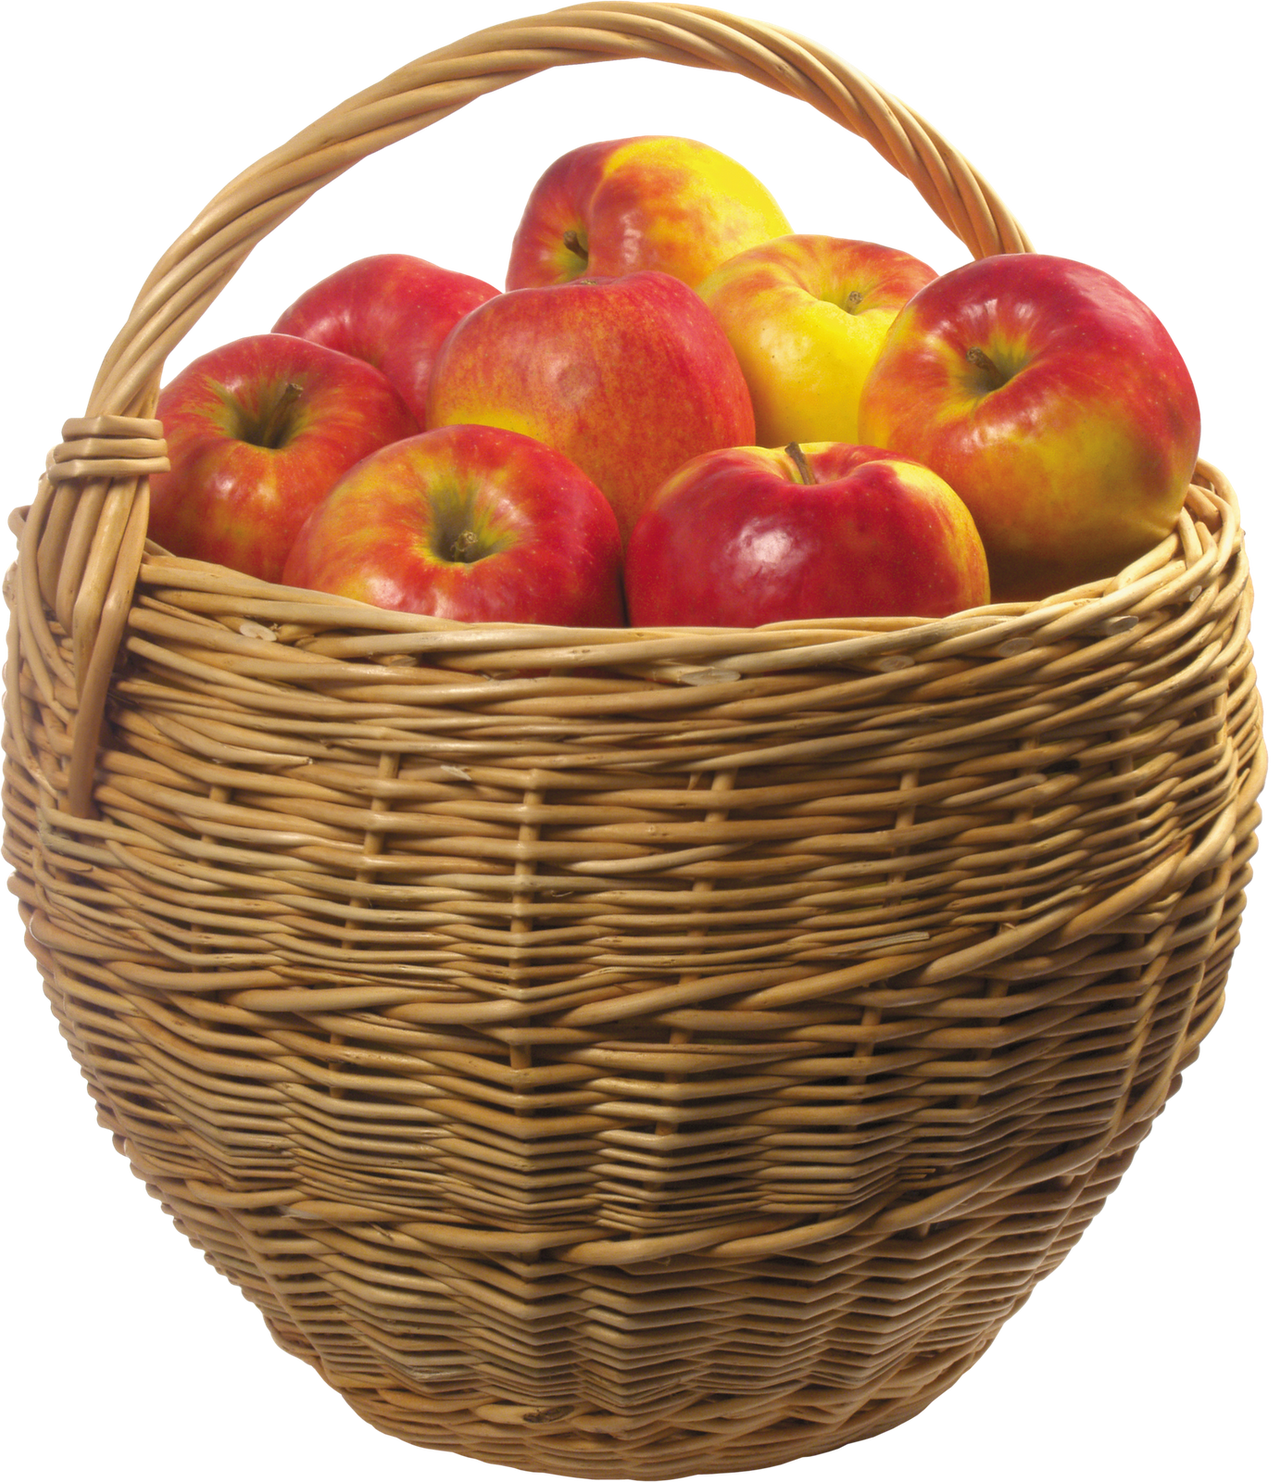 A basket contains 5 apples Do you know how to divide them